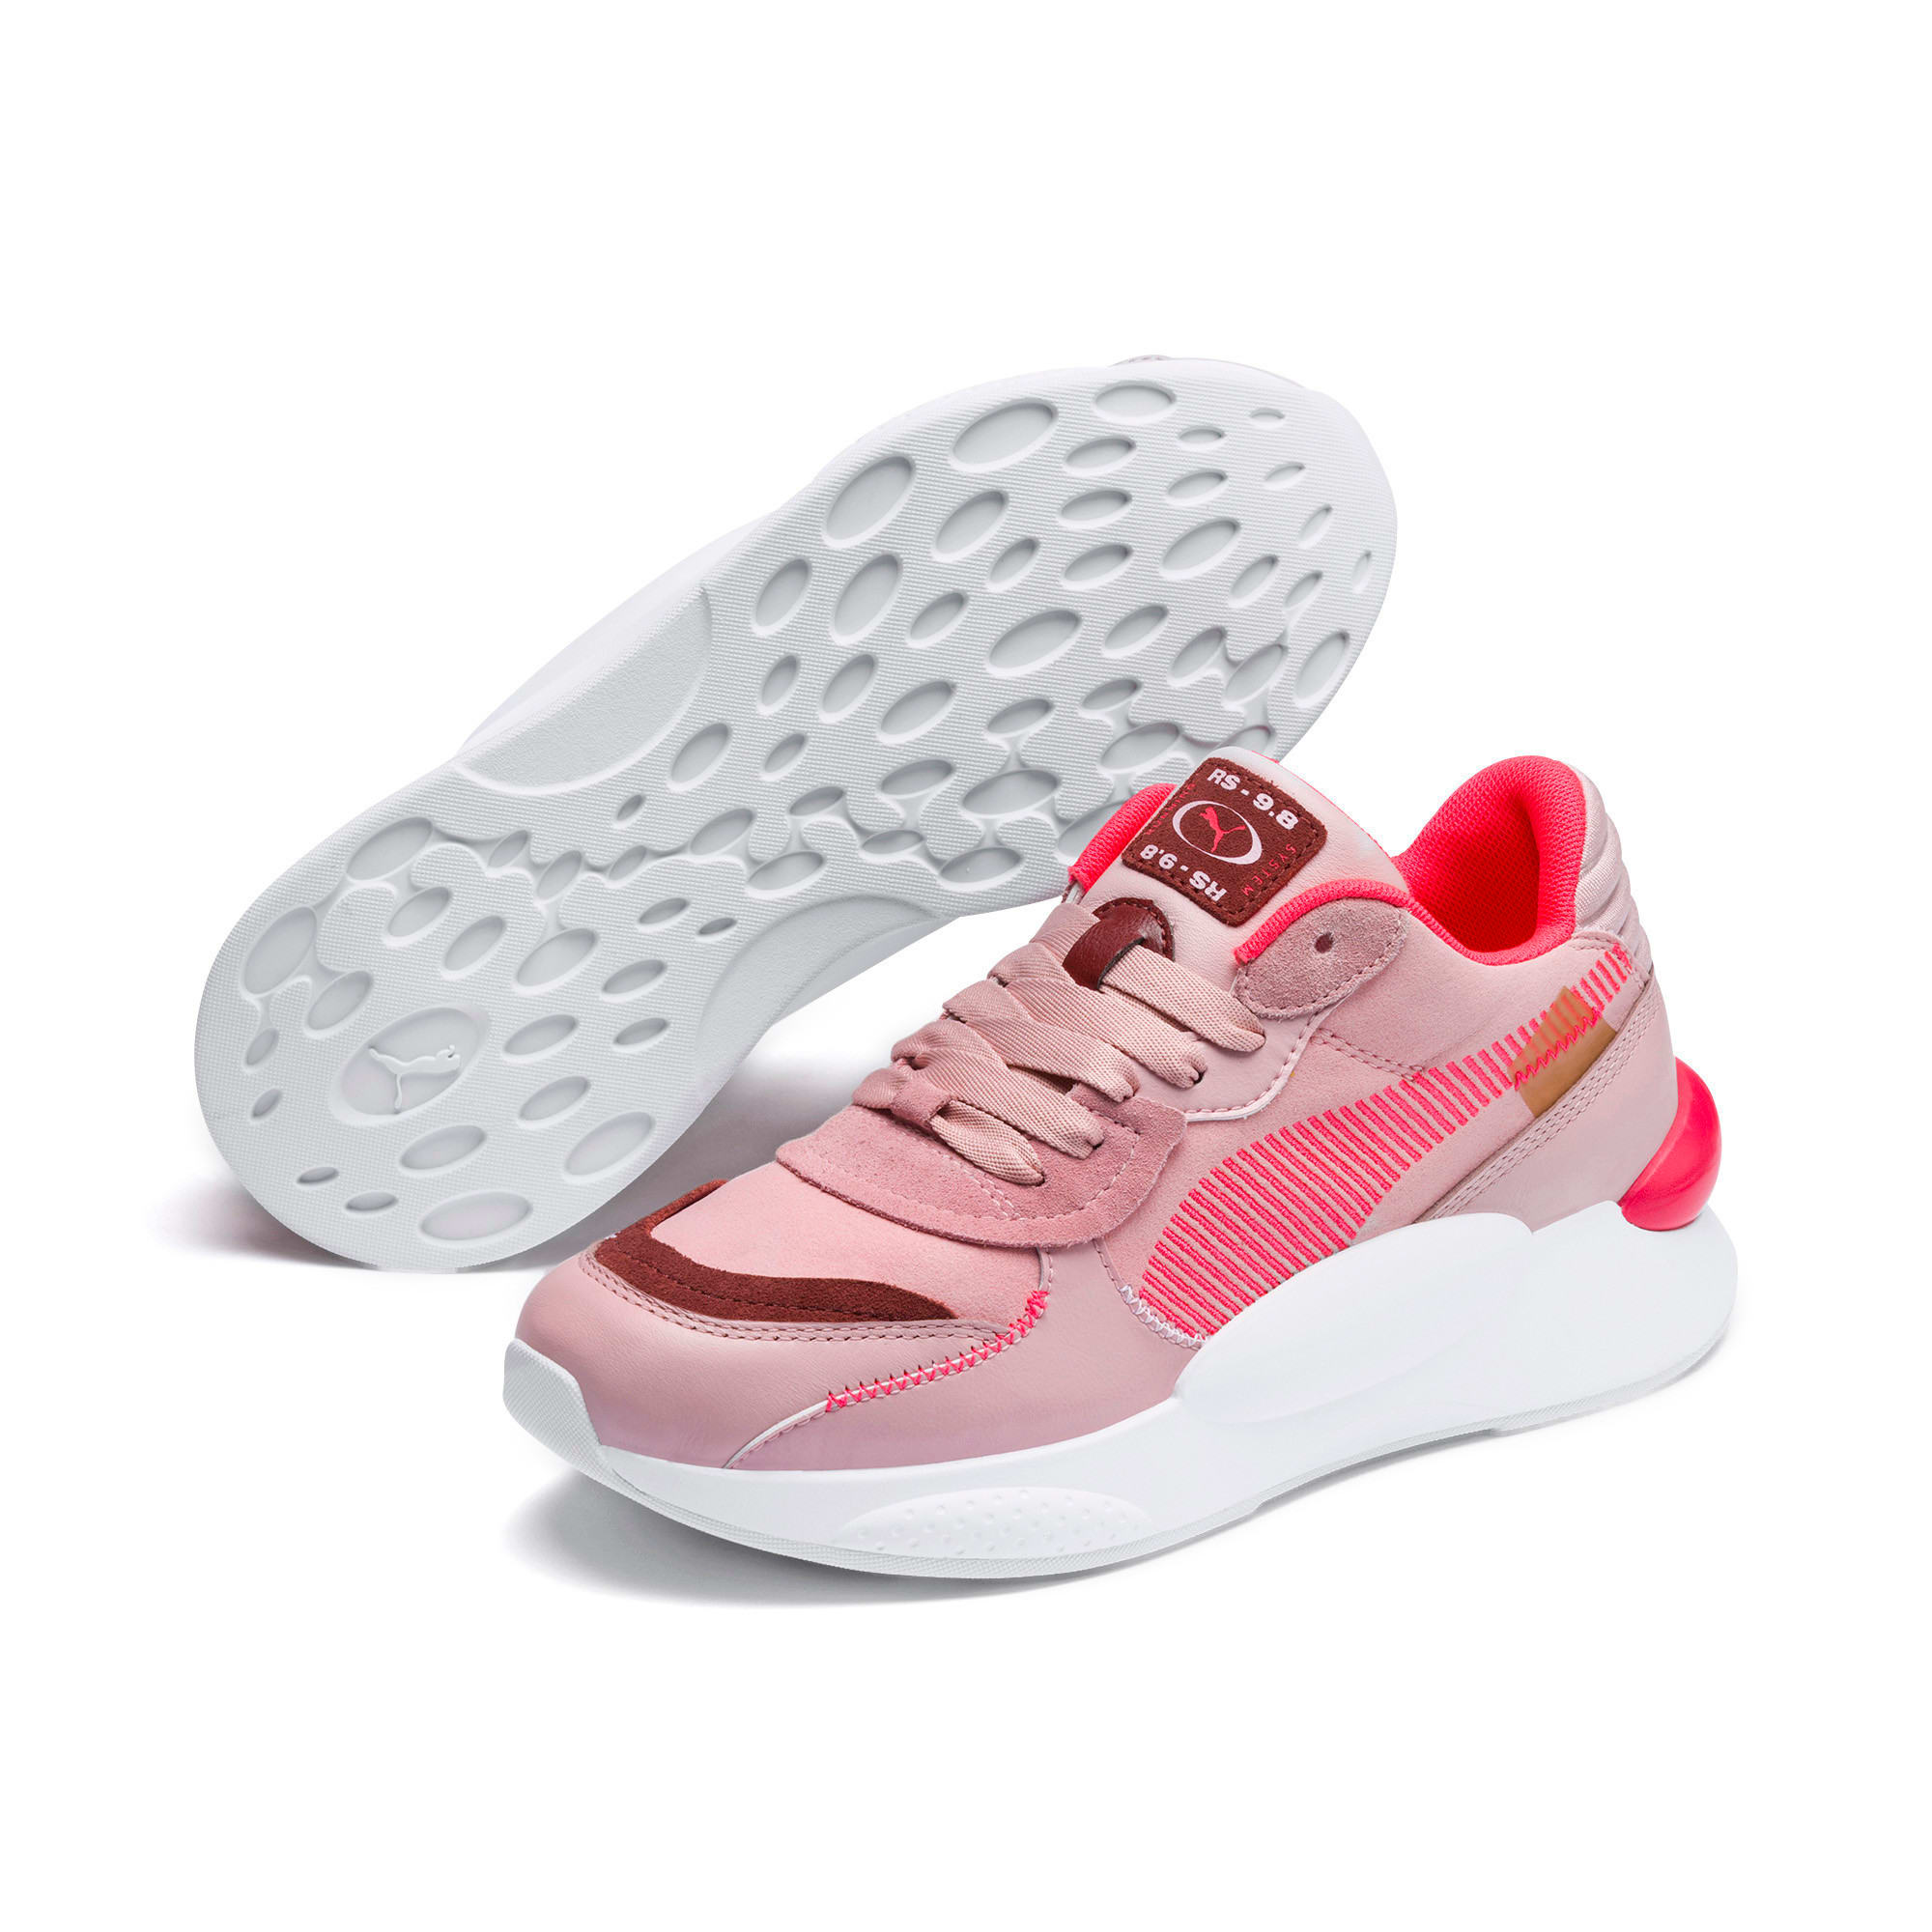 Thumbnail 8 of RS 9.8 Proto Women's Trainers, Bridal Rose, medium-IND